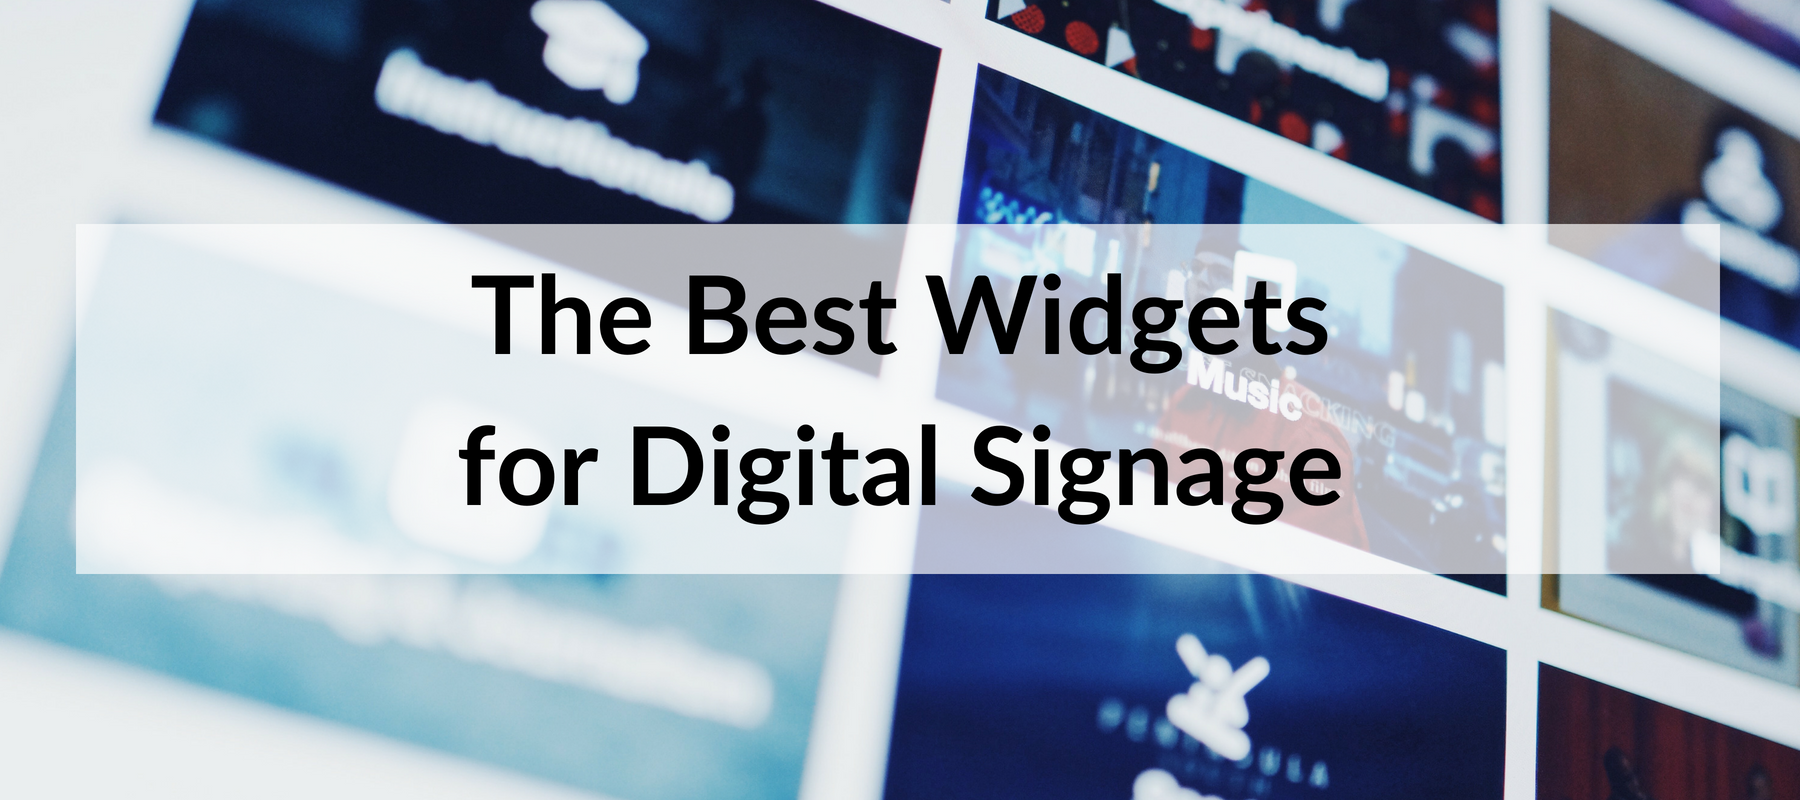 The Best Widgets for Digital Signage